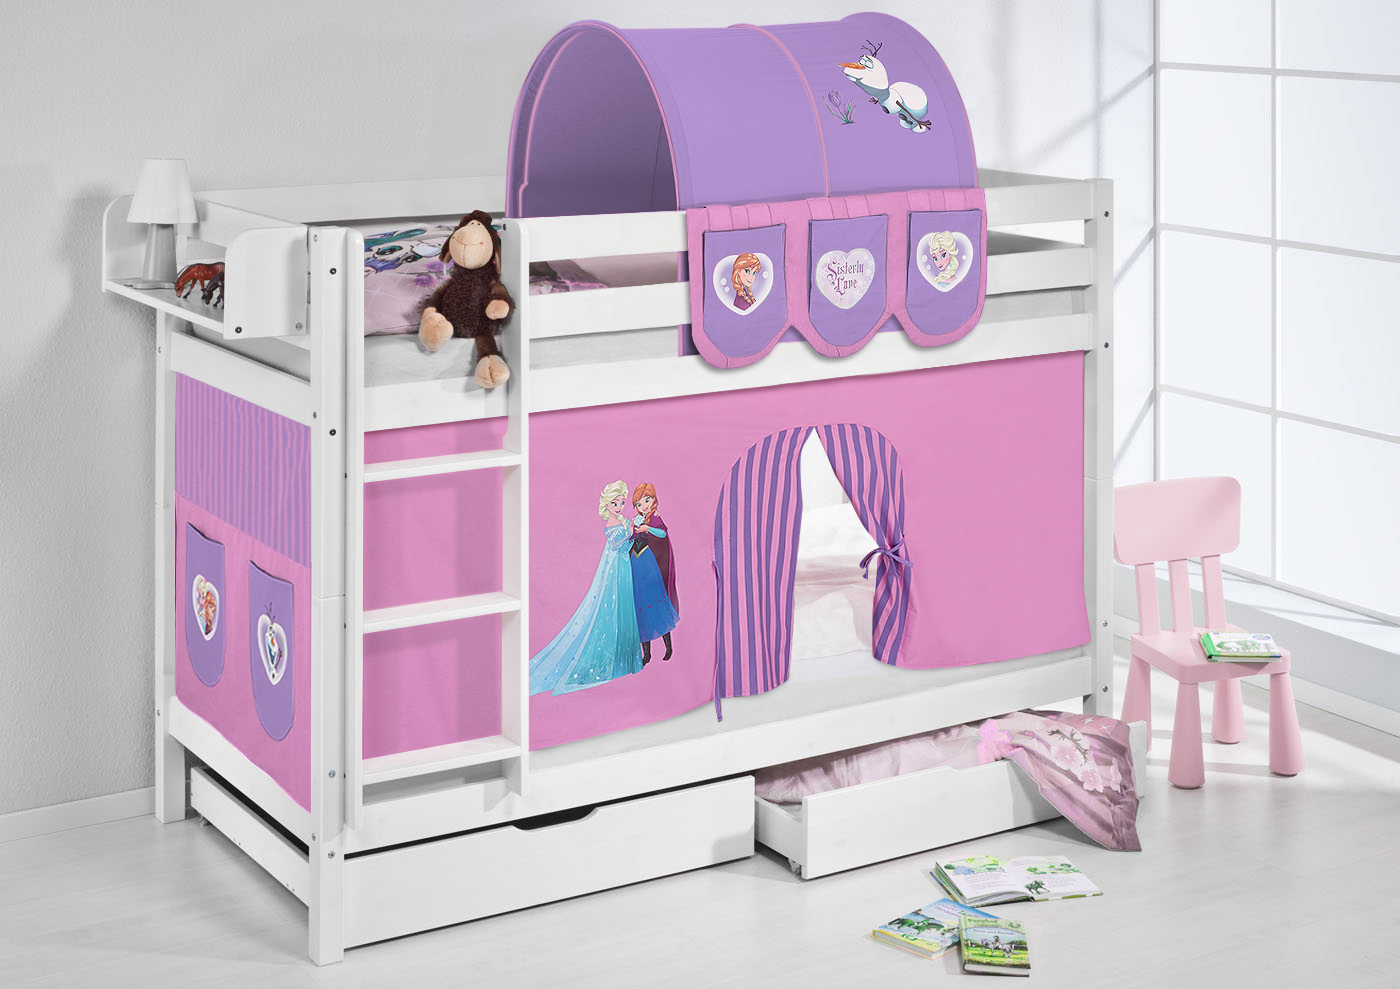 hochbett vorhang frozen lilokids hochbett disney 39 s frozen mit turm rutsche und vorhang. Black Bedroom Furniture Sets. Home Design Ideas